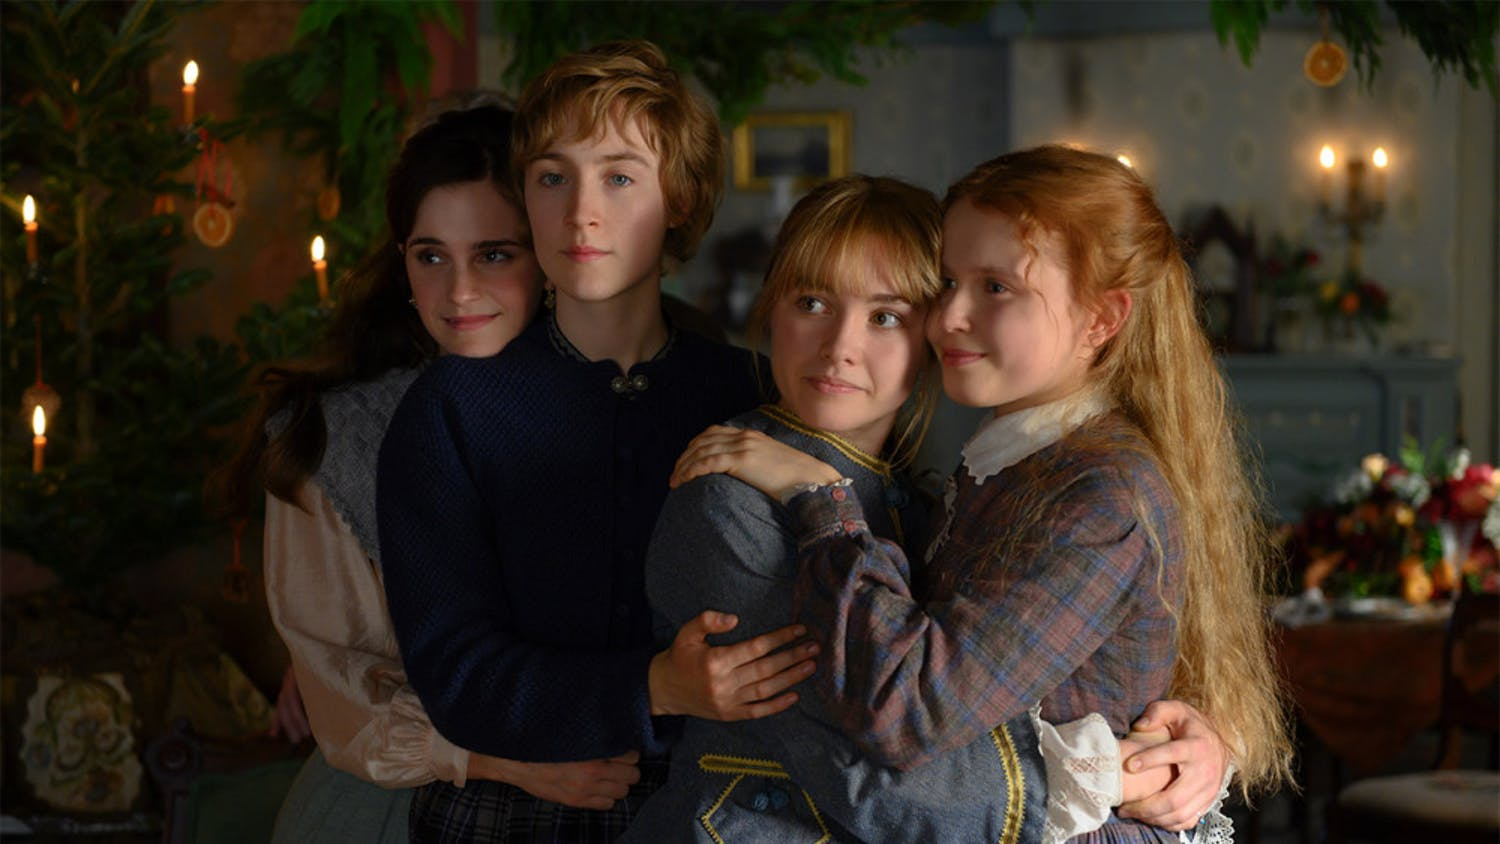 """Greta Gerwig's """"Little Women"""" is one of the films competing for Best Picture at the upcoming 92nd Academy Awards. Soairse Ronan, who plays Jo March, is also nominated for Actress in a Leading Role."""